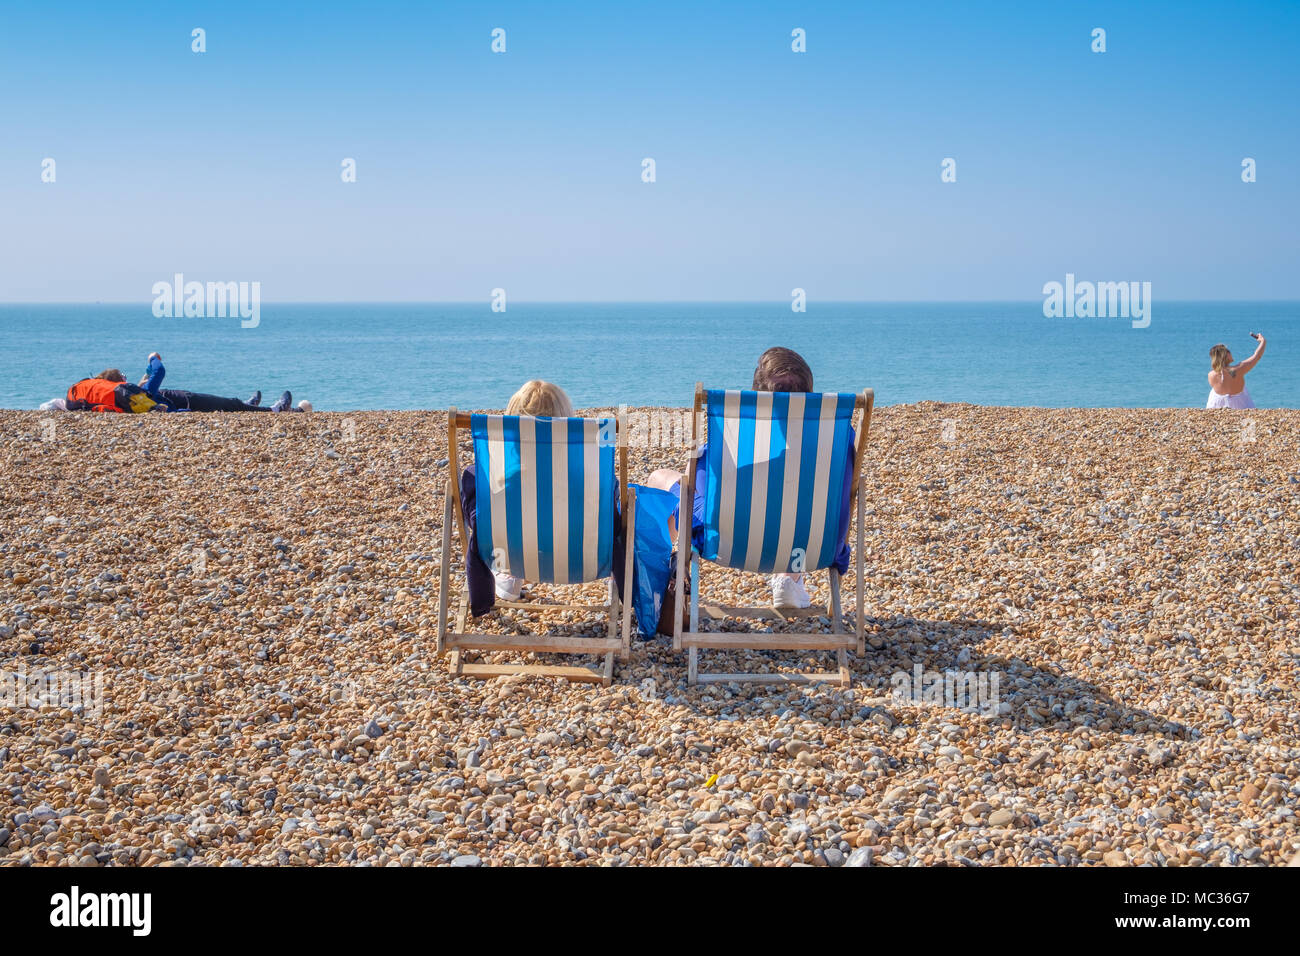 BRIGHTON, UK - APRIL 8, 2017: Couple sitting in deckchairs on a sunny April day on Brighton beach in April 2017. Stock Photo